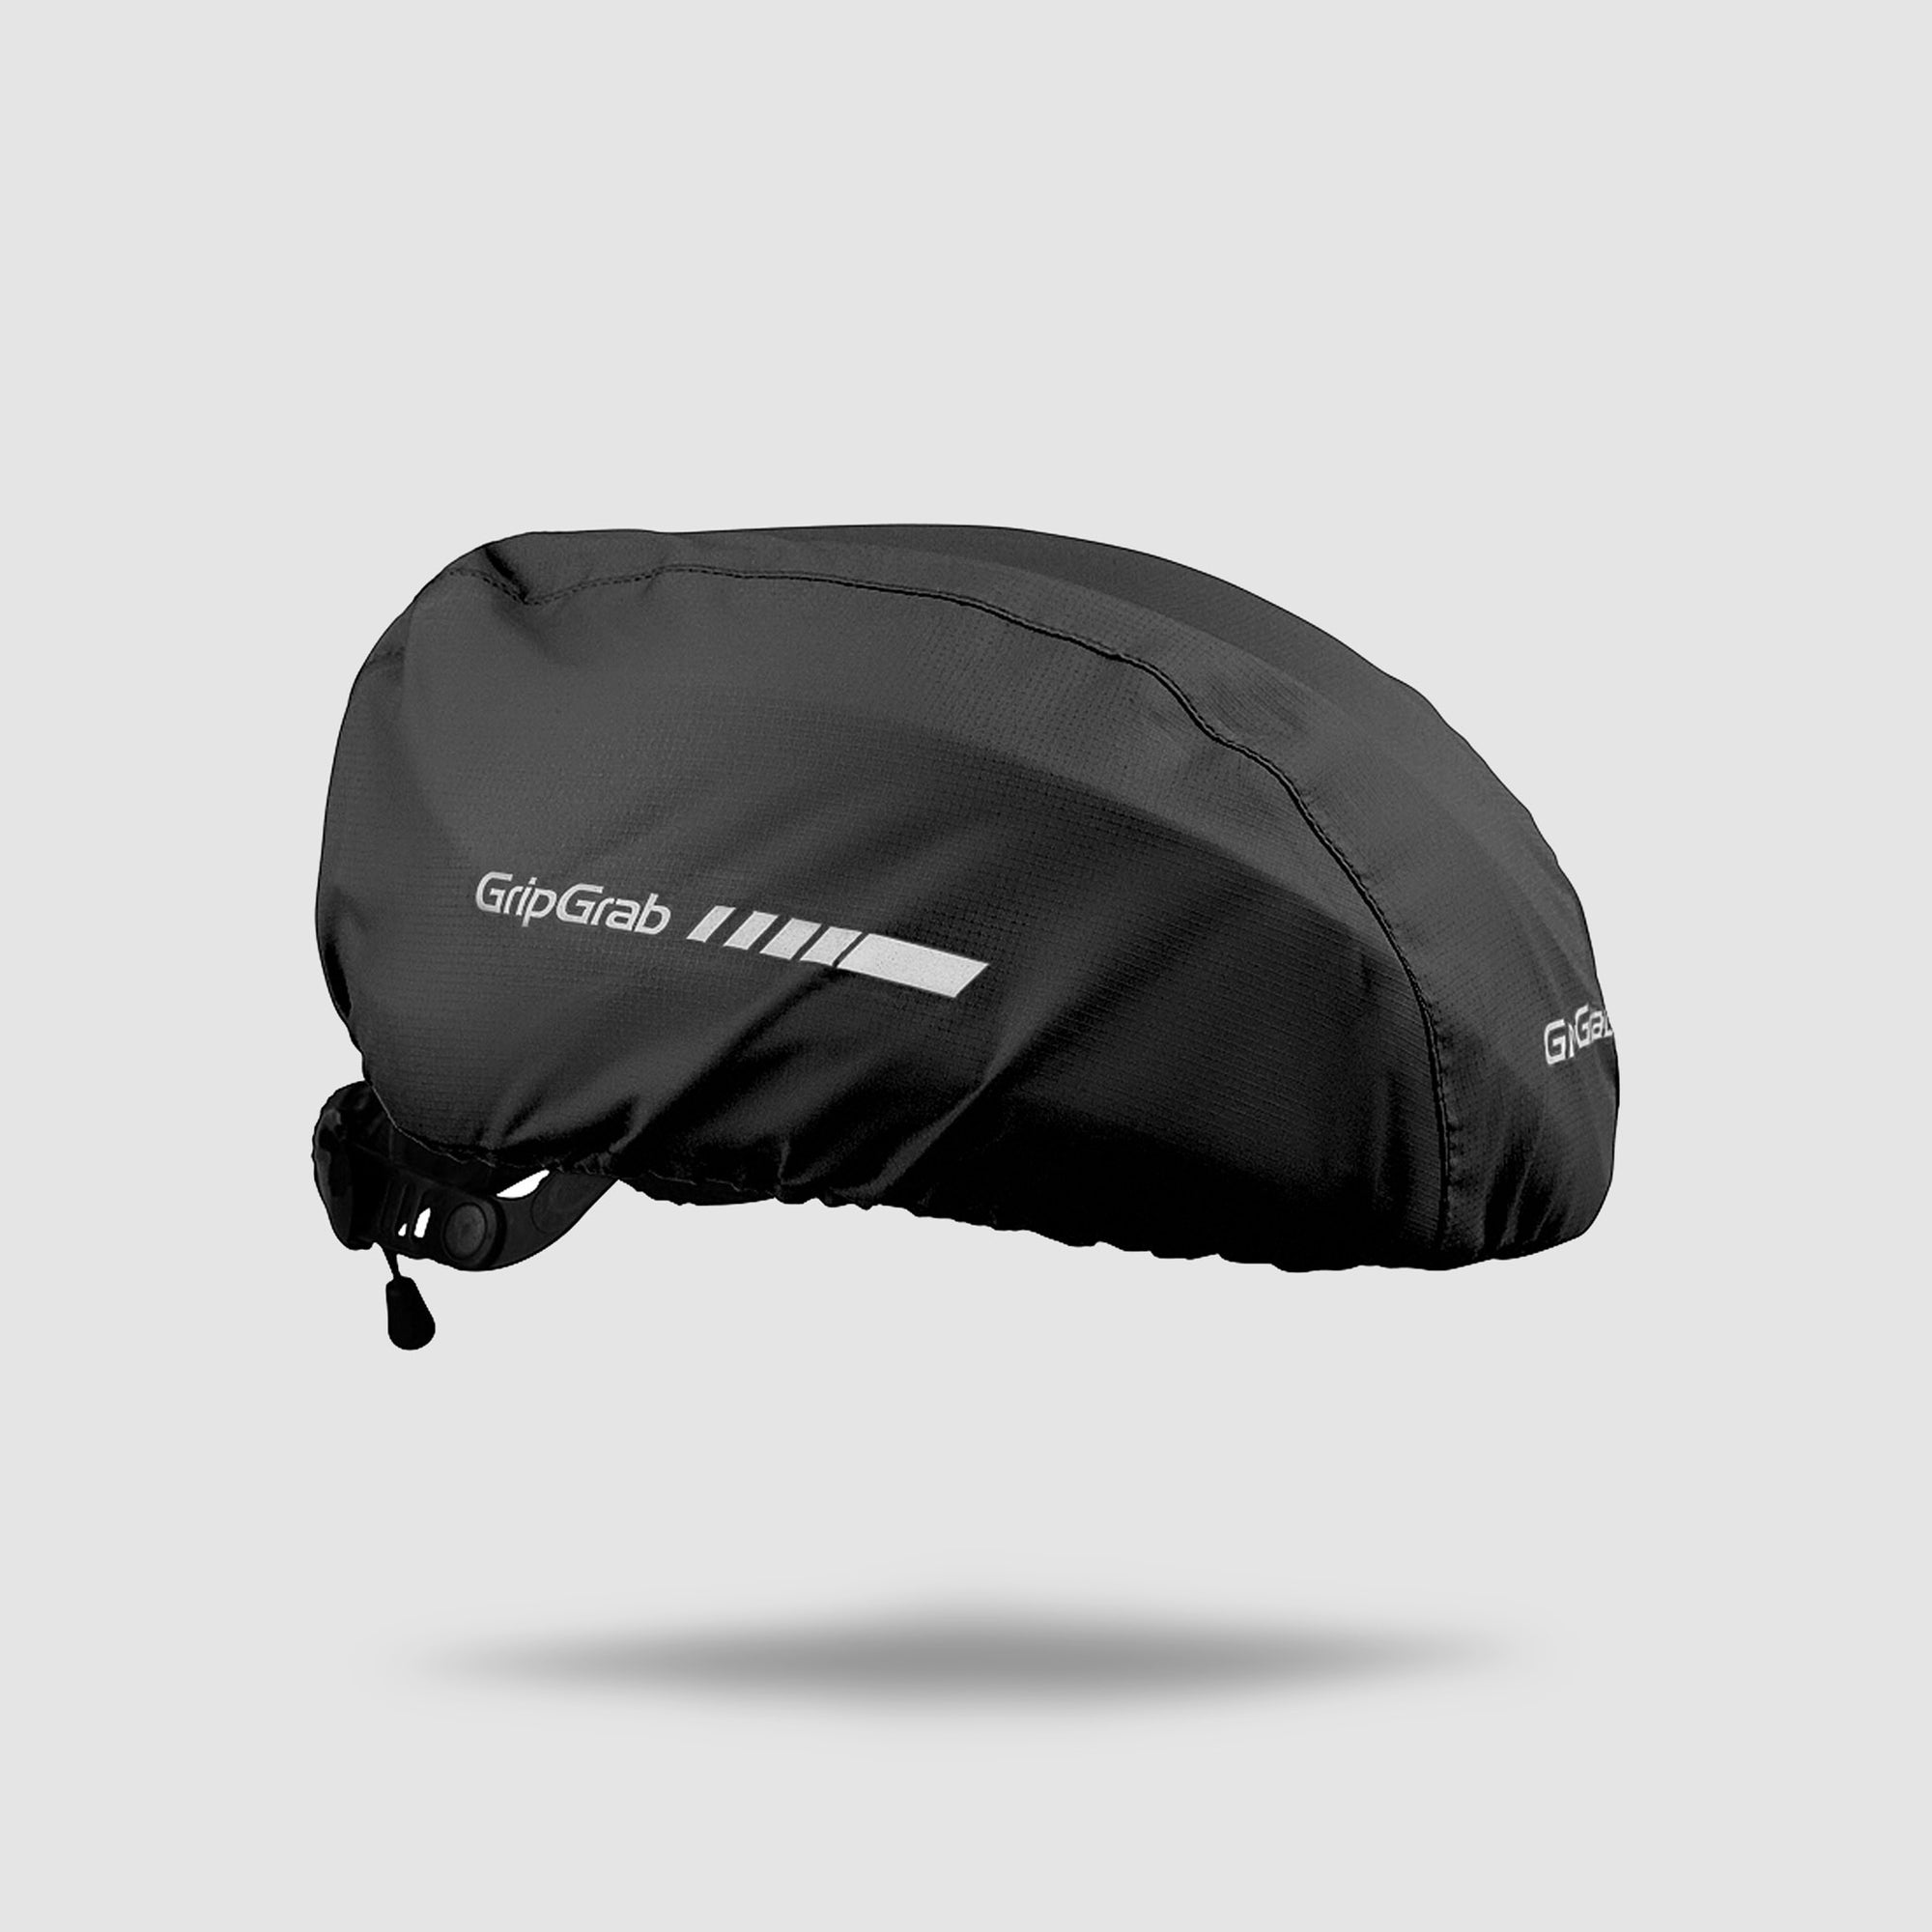 GripGrab Waterproof Windproof Cycling Rain Helmet Cover Reflective Bicycle Commuting High-Visibility Road MTB Headwear Couvre Casque Mixte